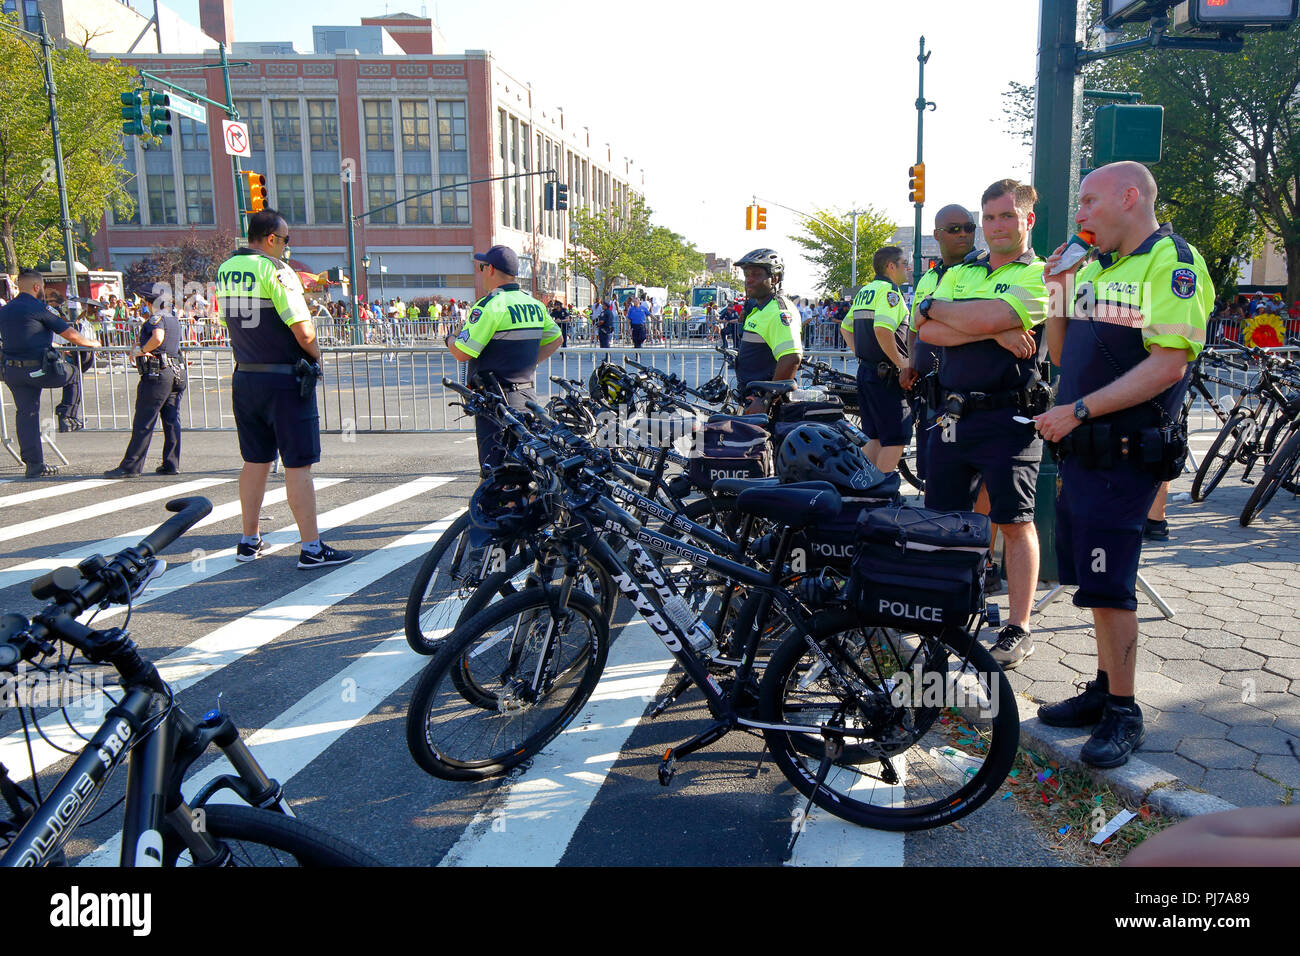 NYPD Strategic Response Group Bicycle Squad riot cops at a parade - Stock Image